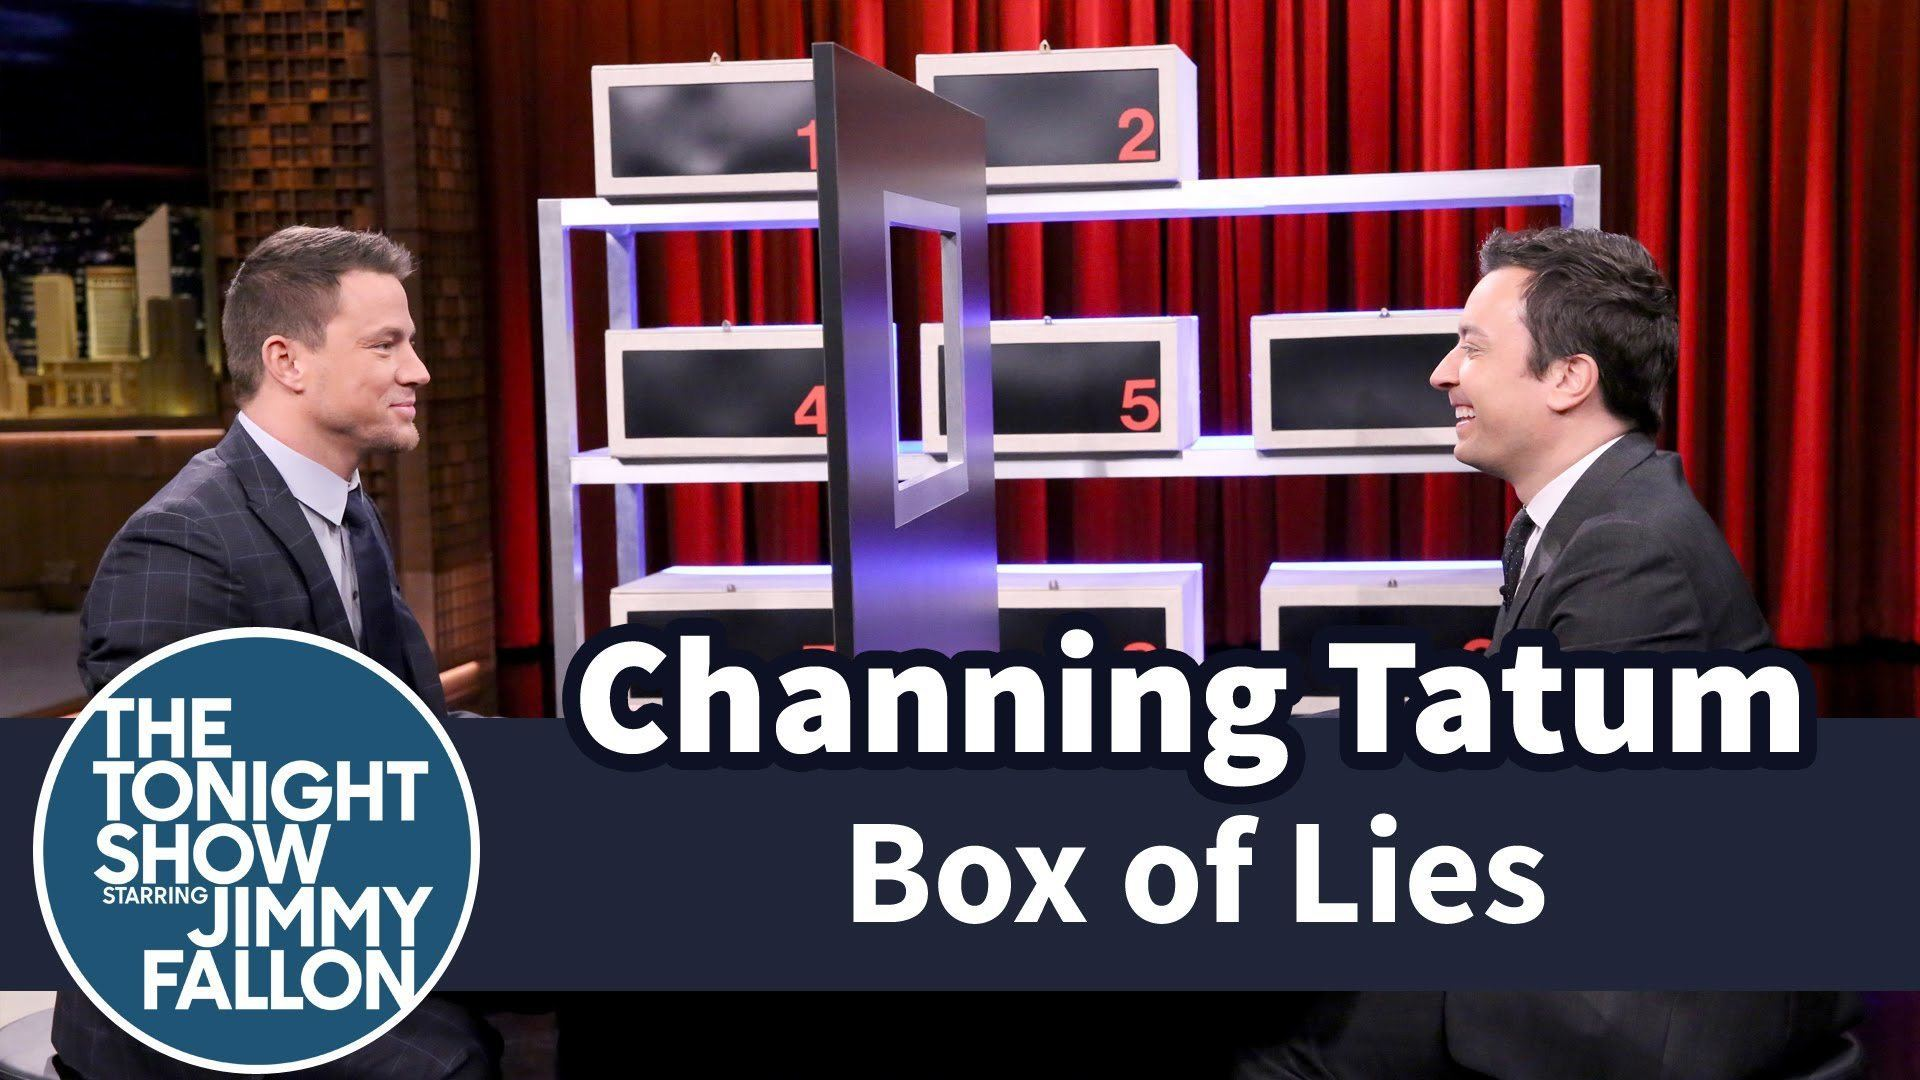 Channing Tatum And Jimmy Fallon Square Off In Box Of Lies